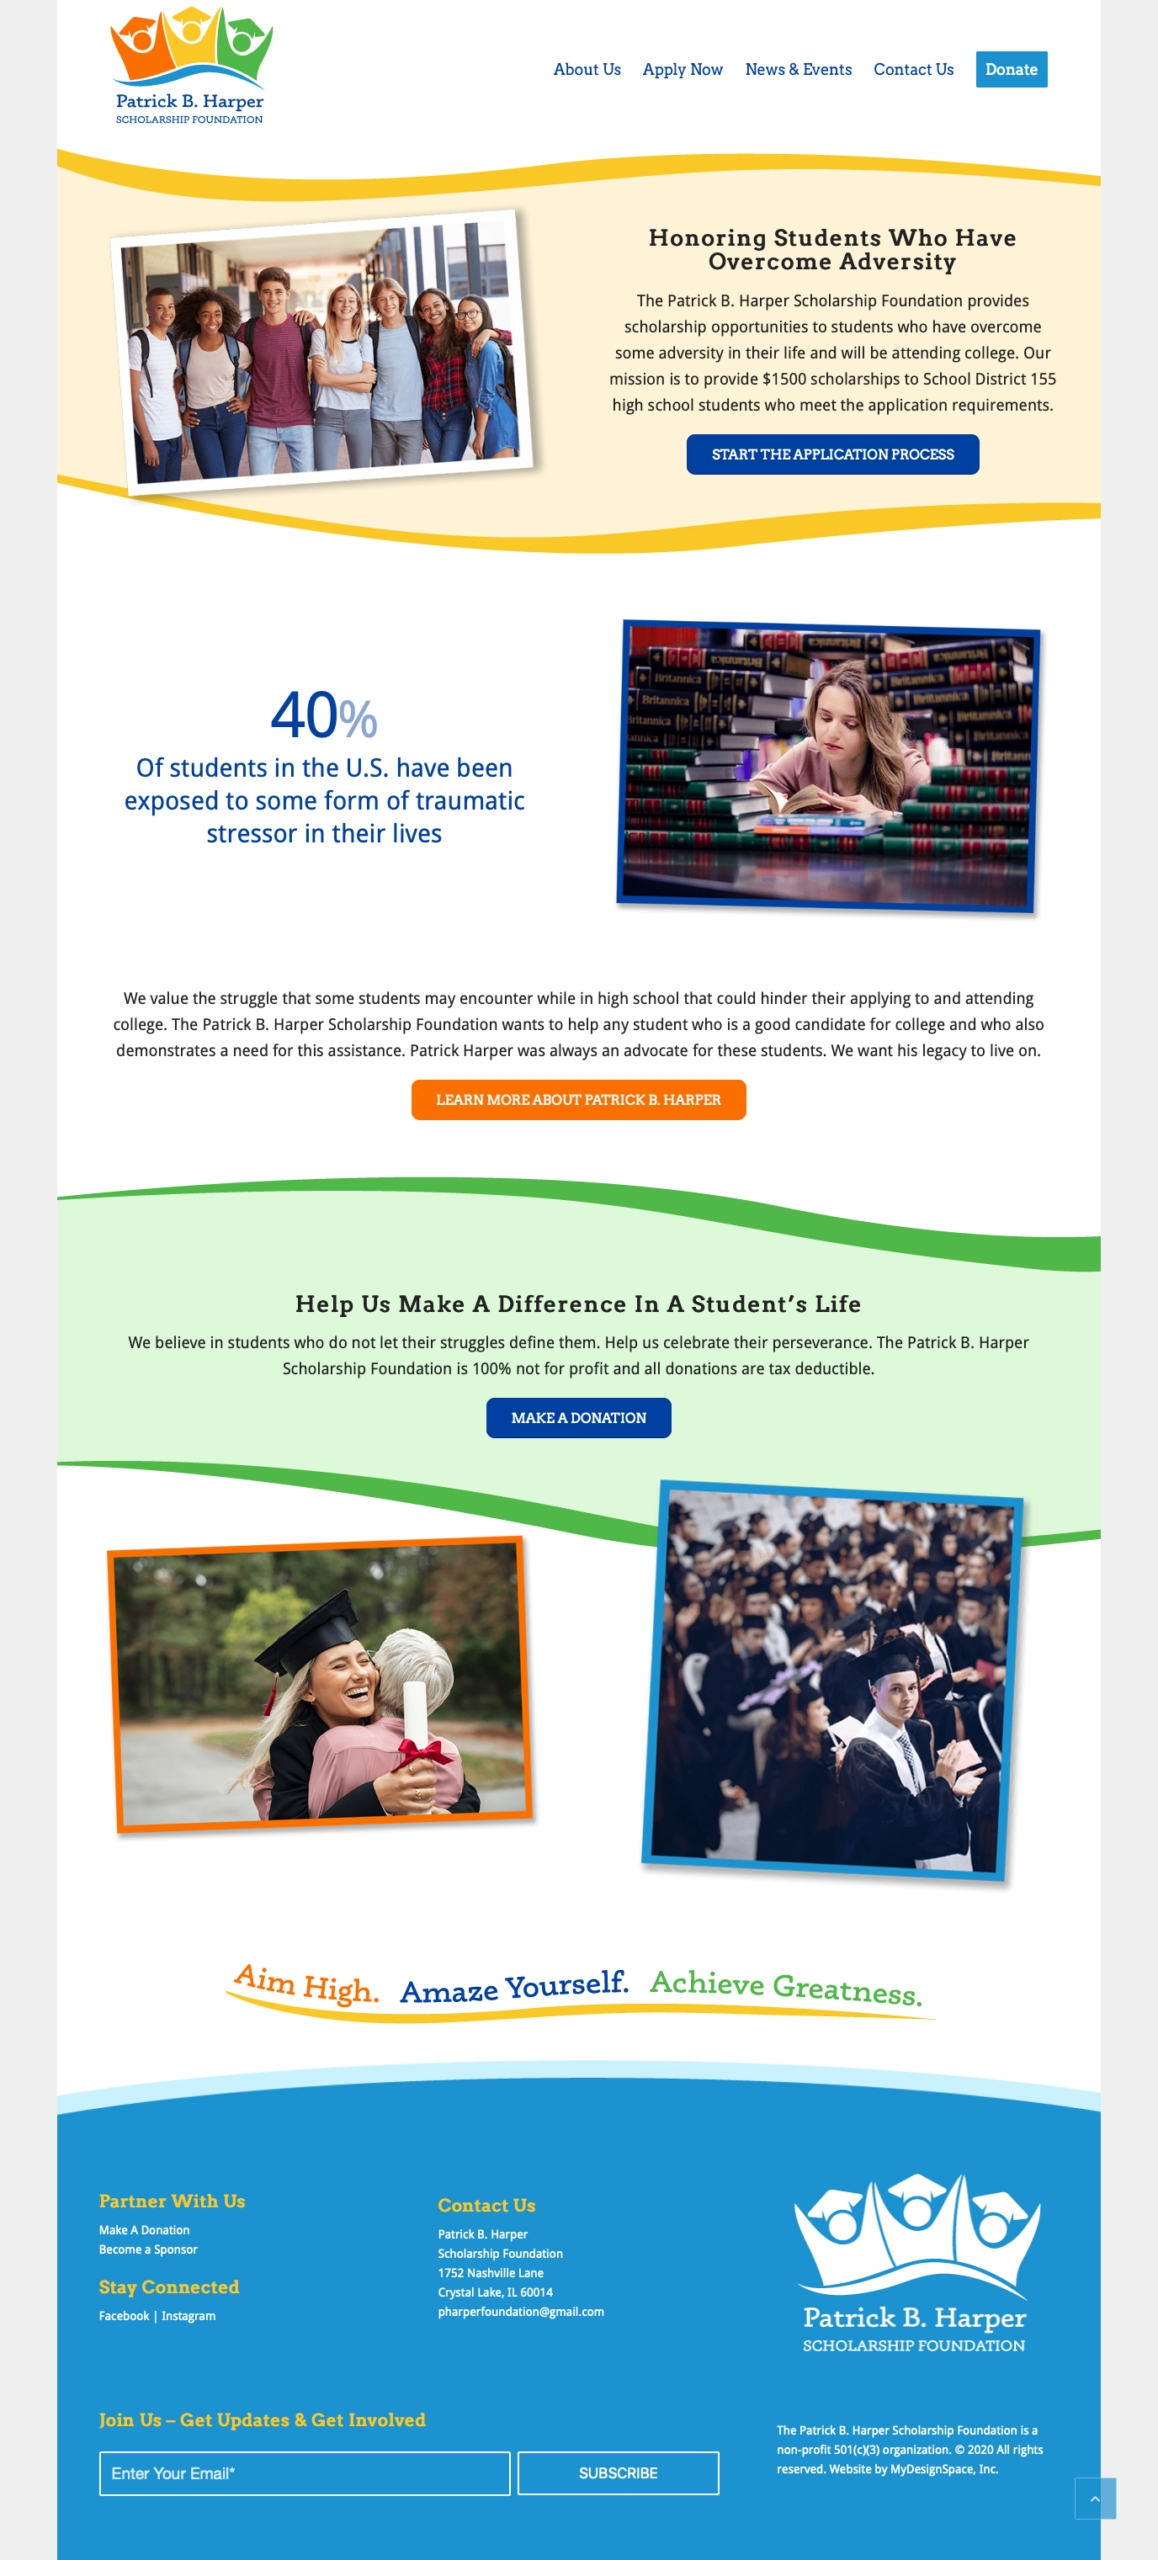 Patrick B. Harper Scholarship Foundation Home Page Layout